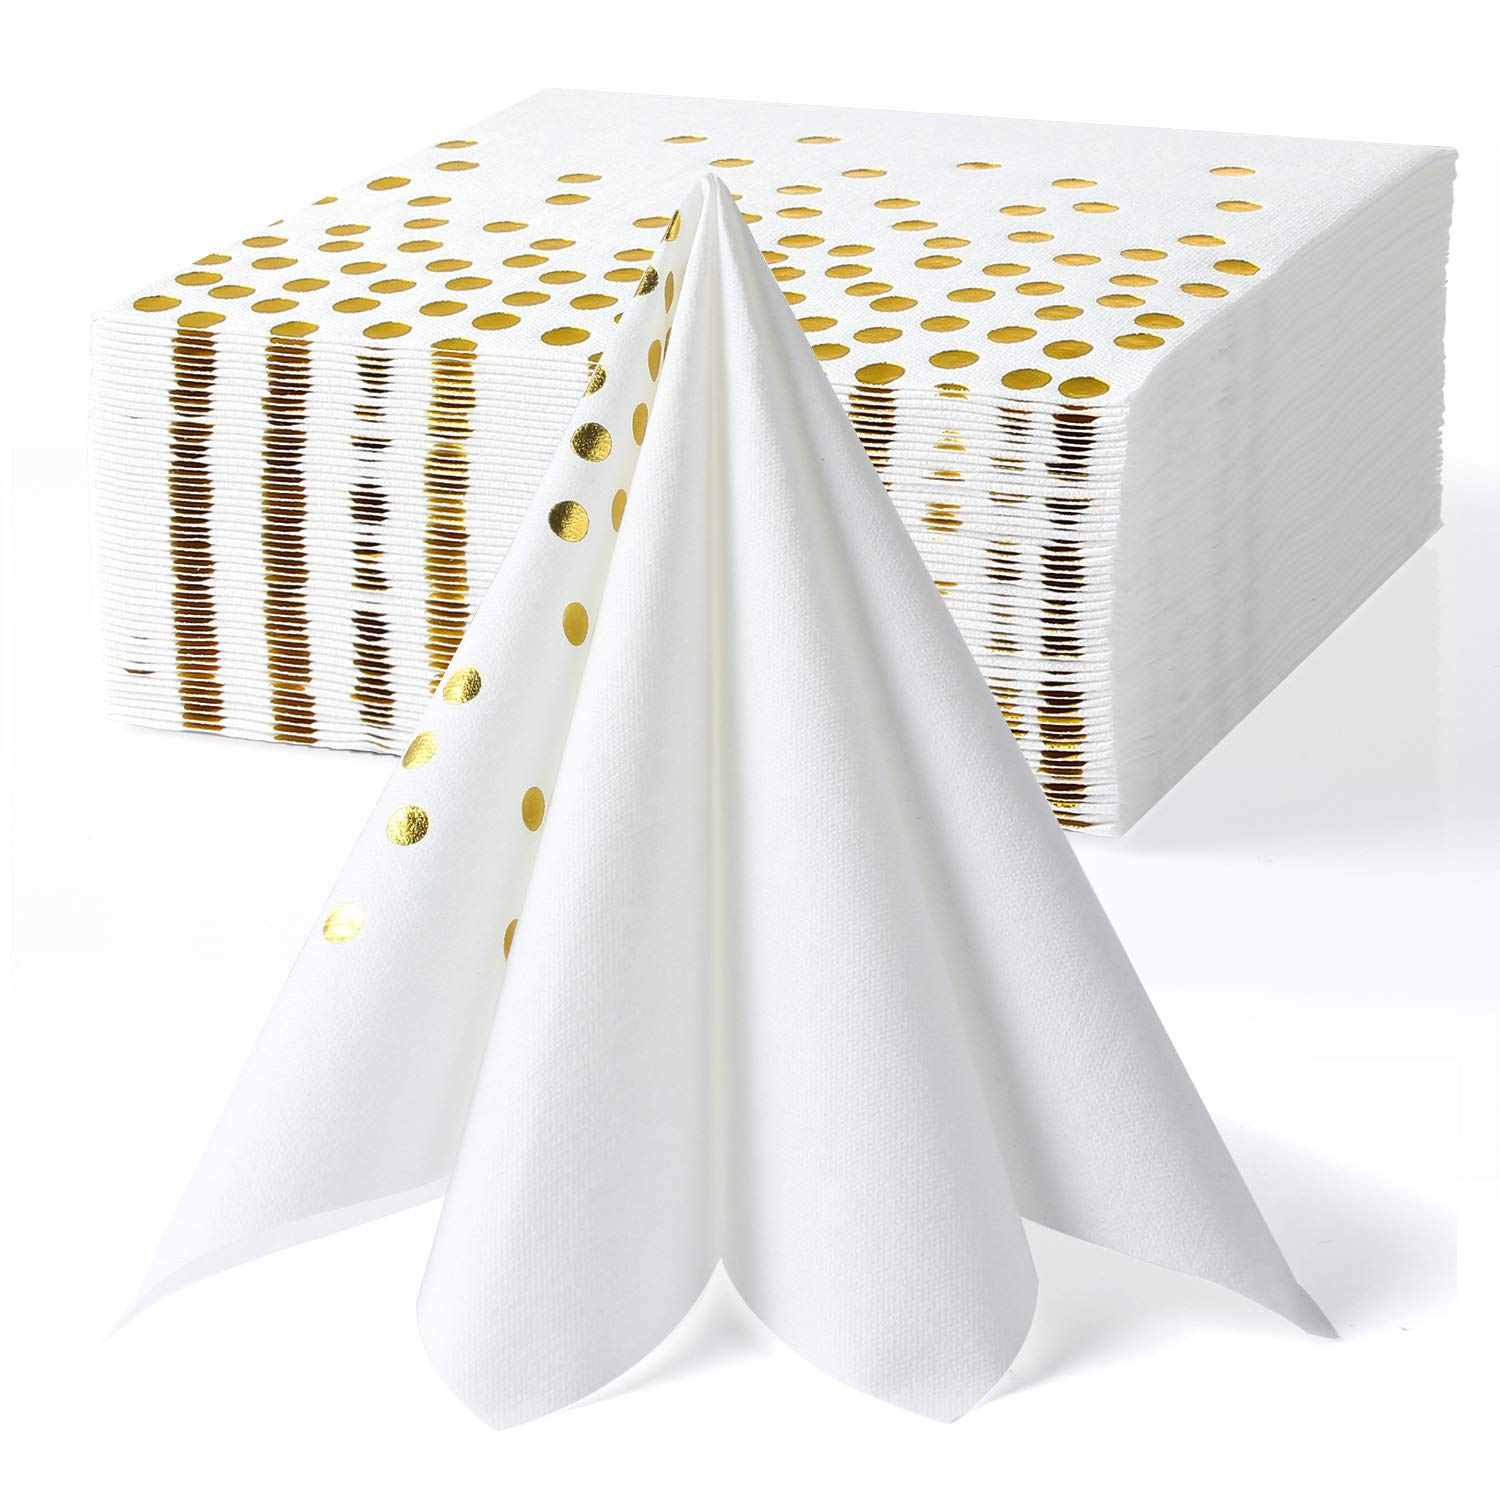 Lekoch White and Gold Napkins,Disposable Cloth Feel Dinner Napkin,Stamped with Sparkly Gold Foil Dots for Birthday,Party,Banquet,Anniversary,50 Pack